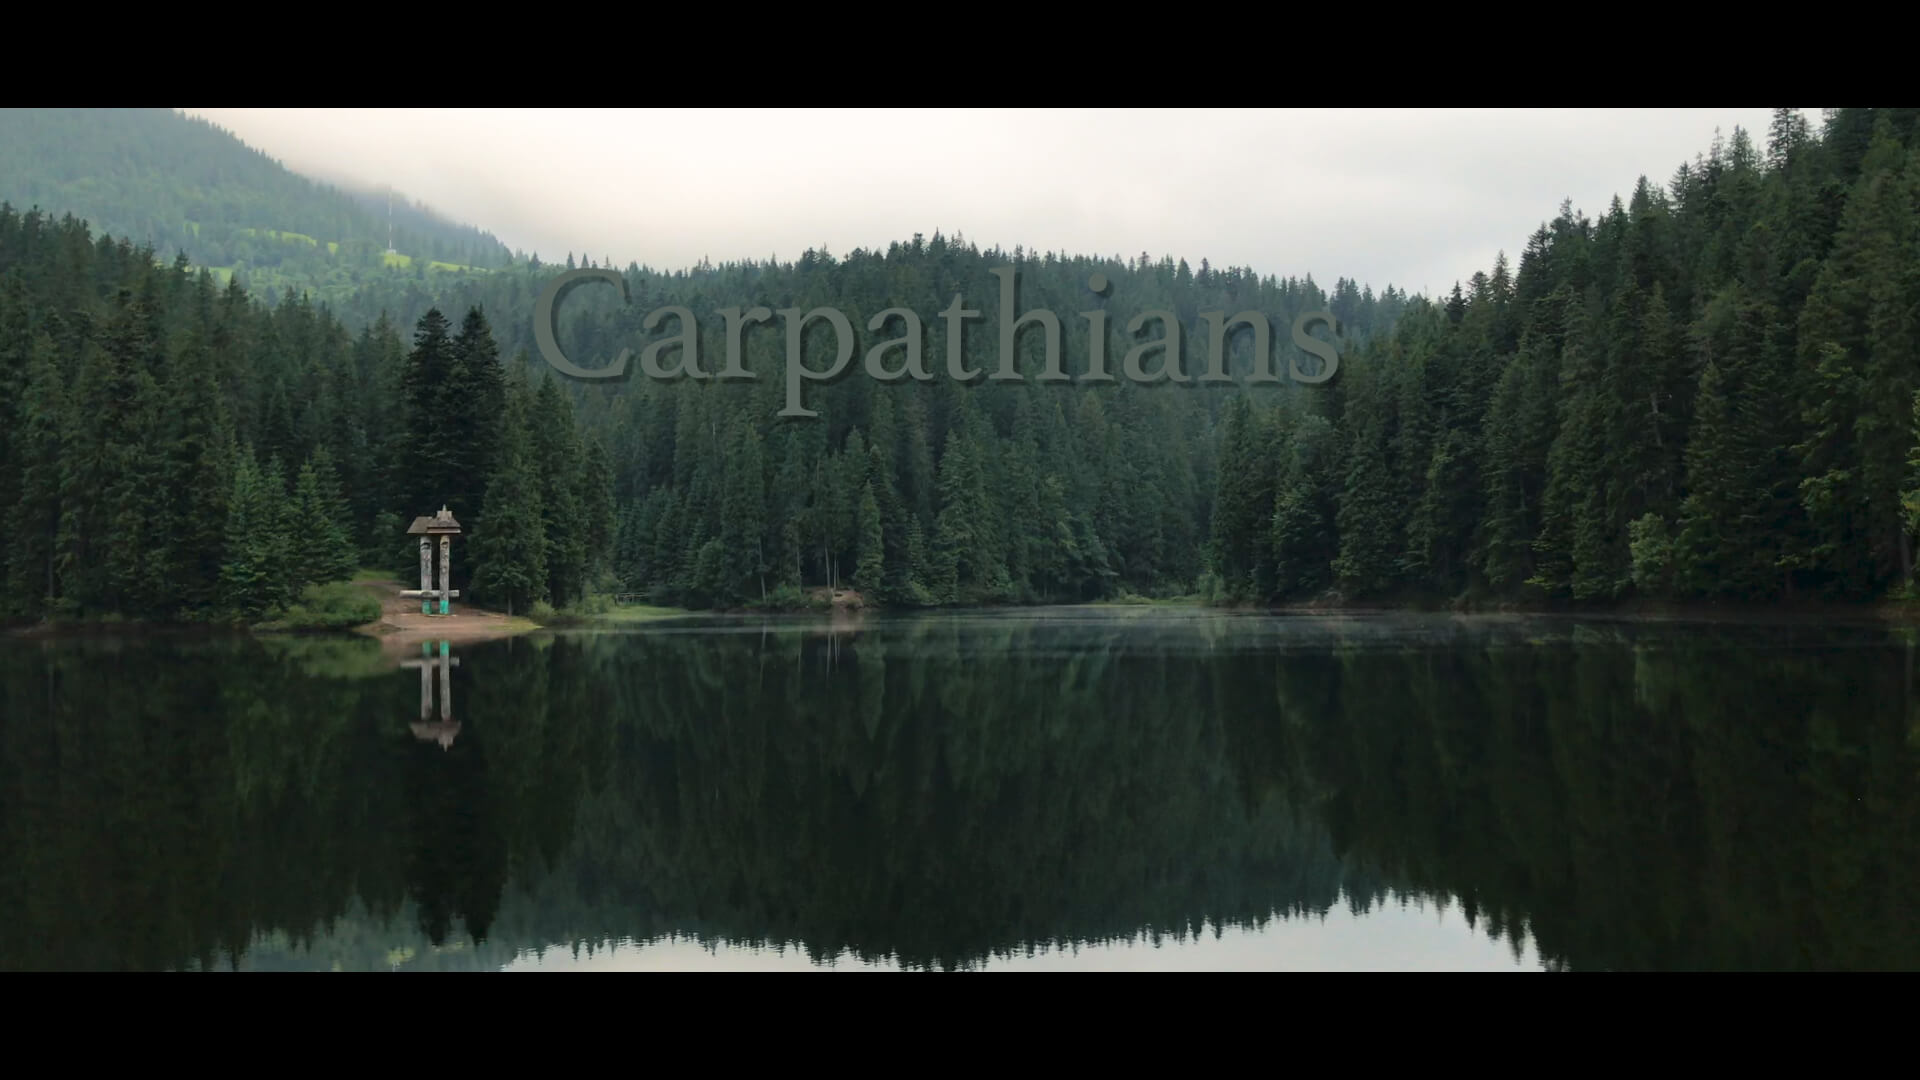 Carpathians travel blog